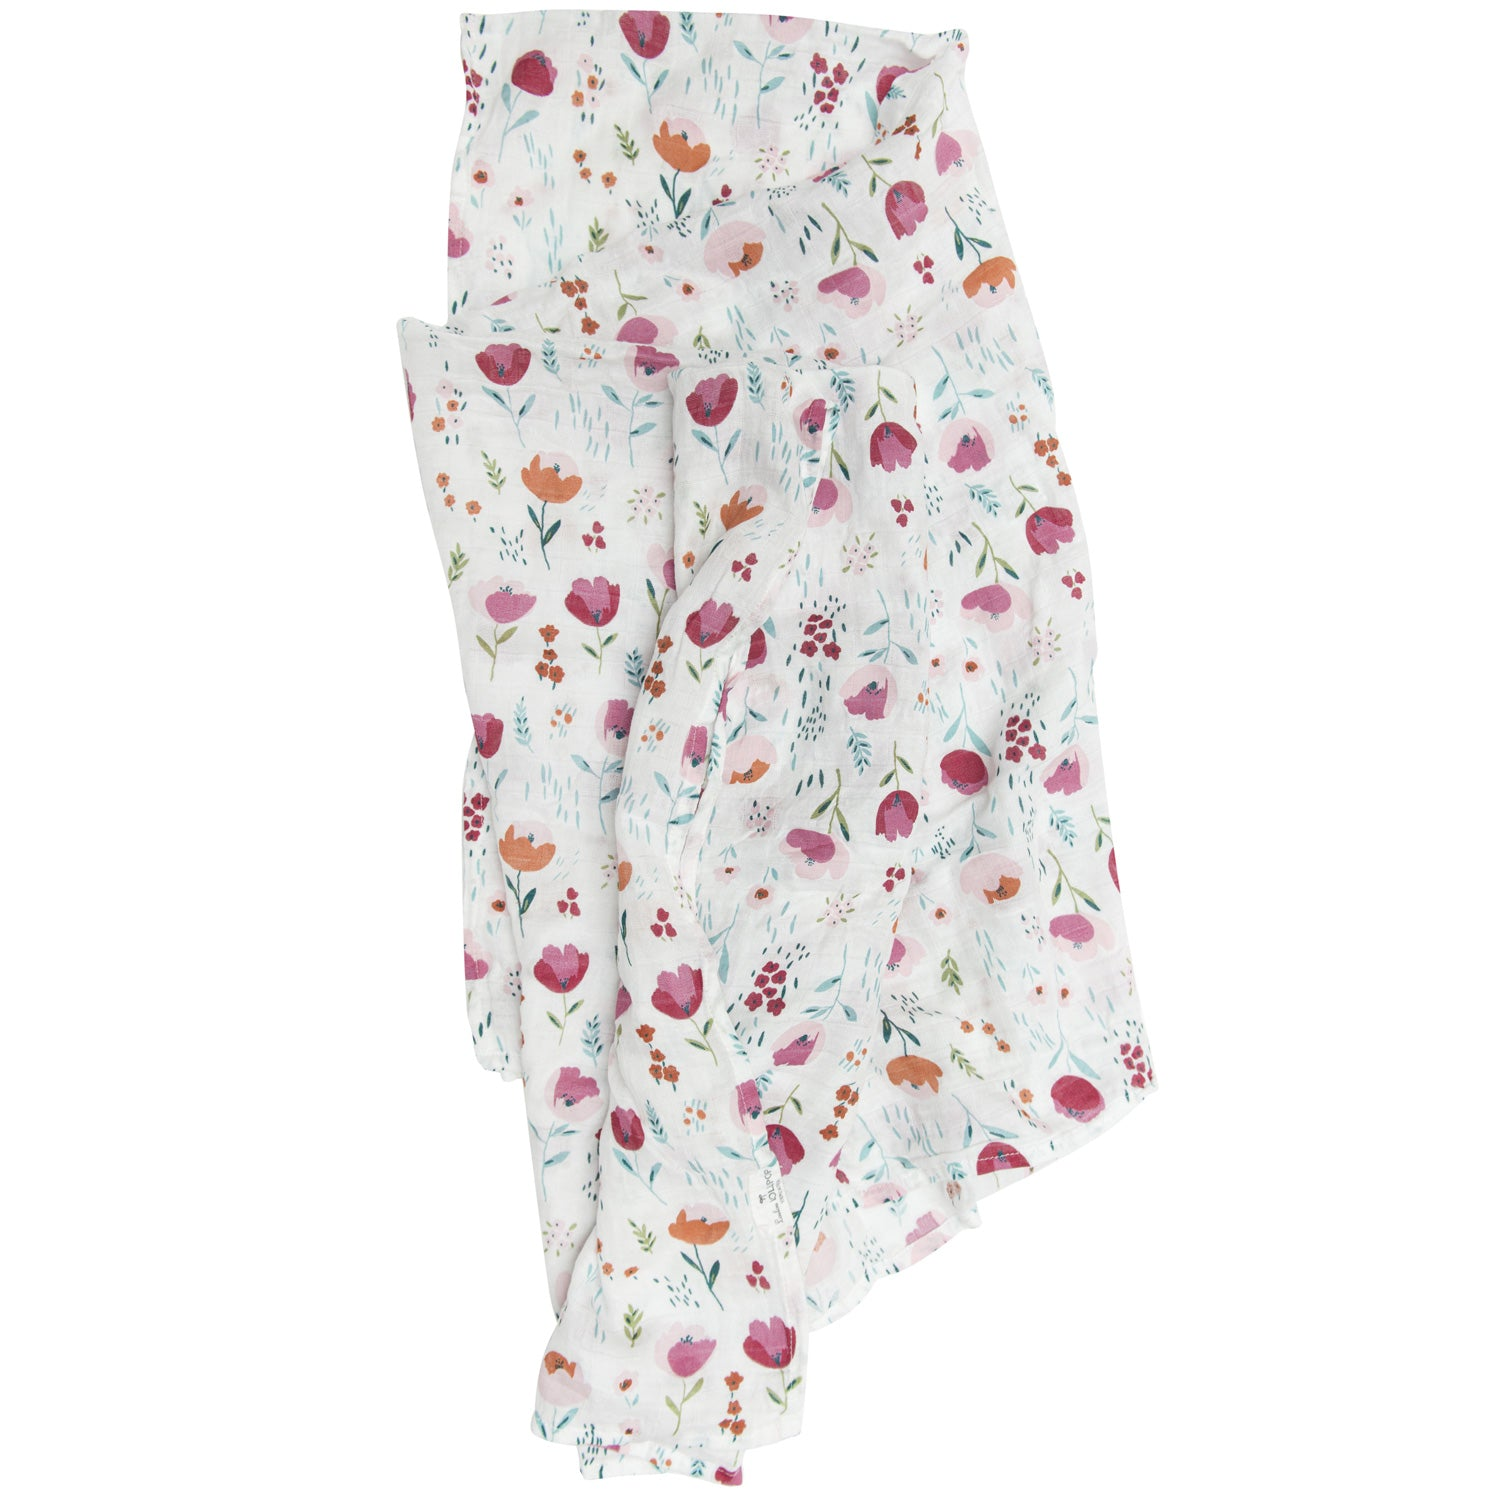 Loulou Lollipop Bamboo Muslin Swaddle Blanket - Rosey Bloom